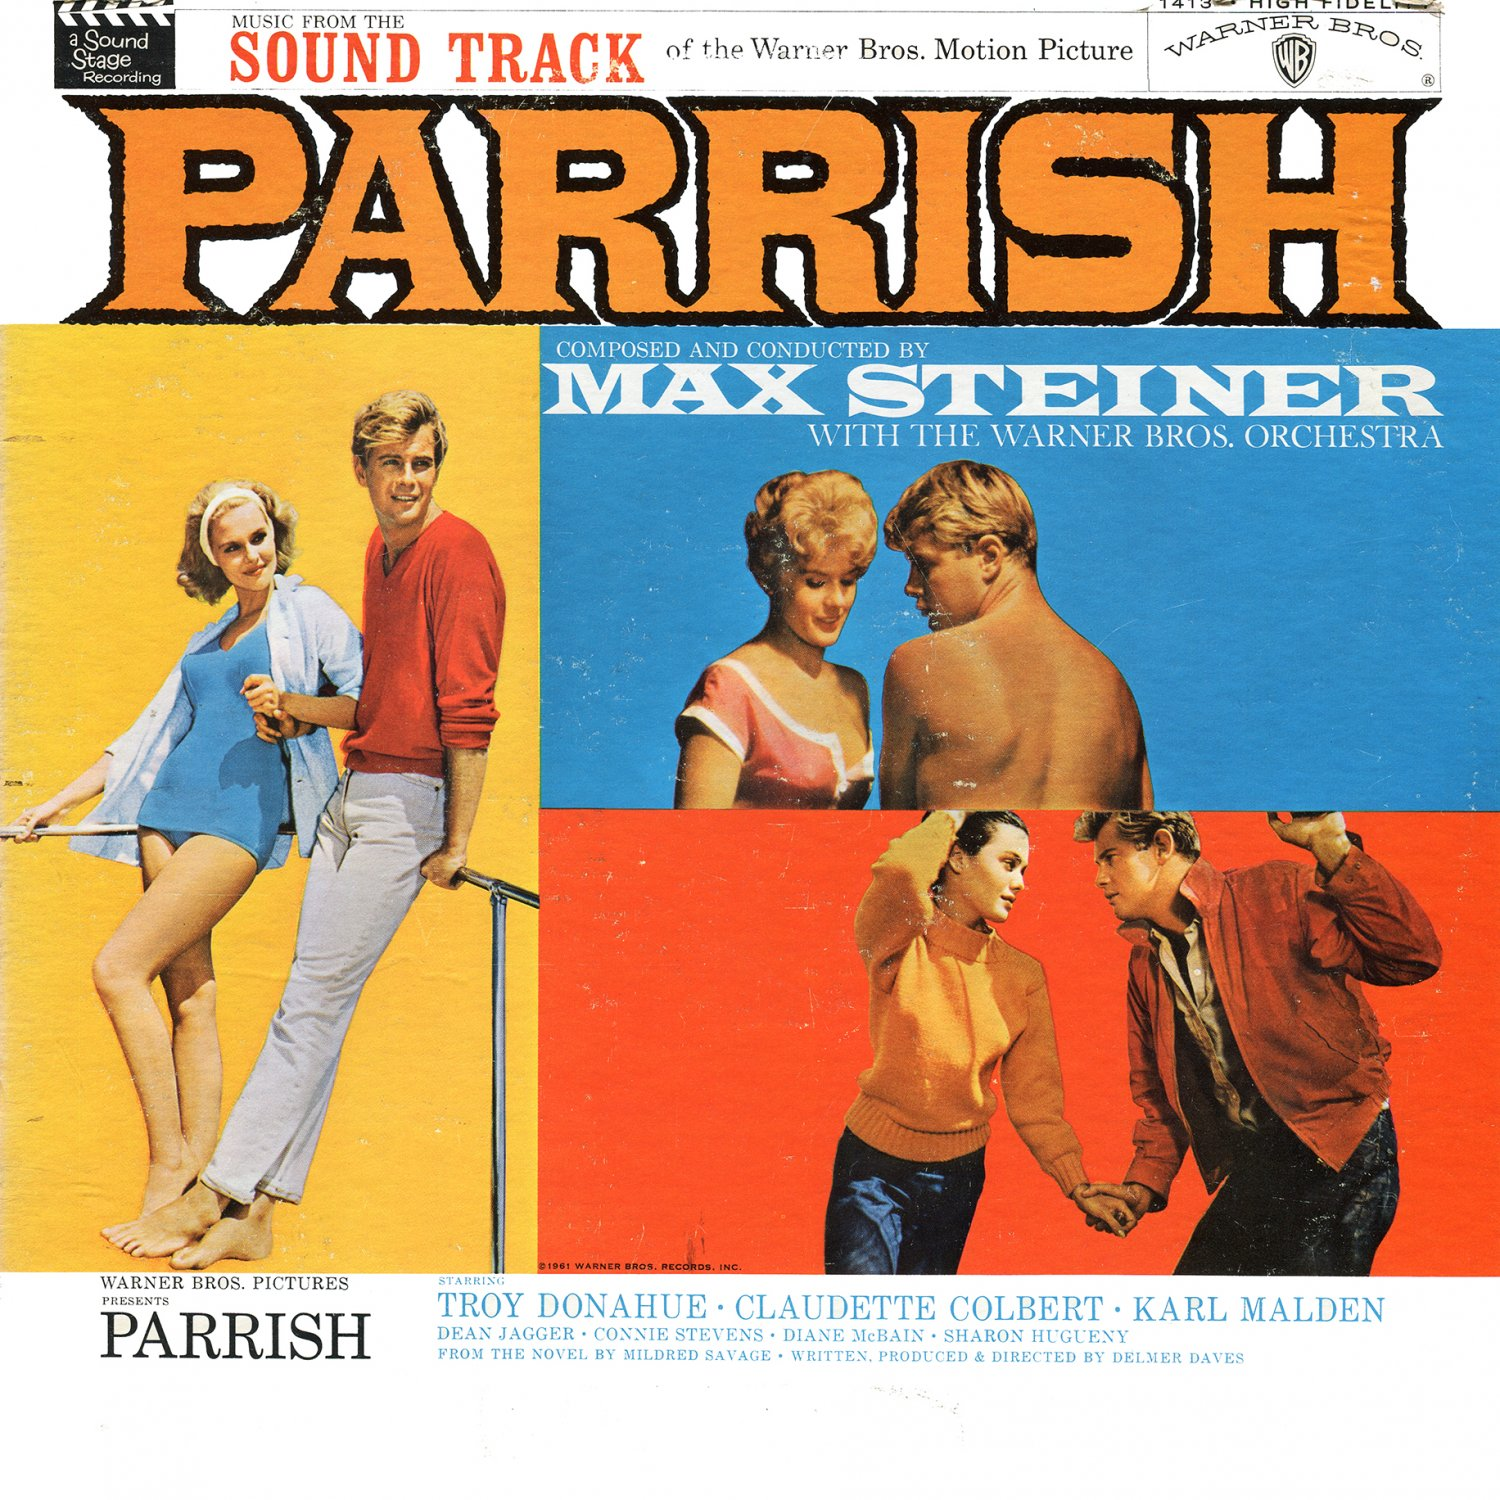 Parrish (1961) - Original Soundtrack, Max Steiner OST LP/CD